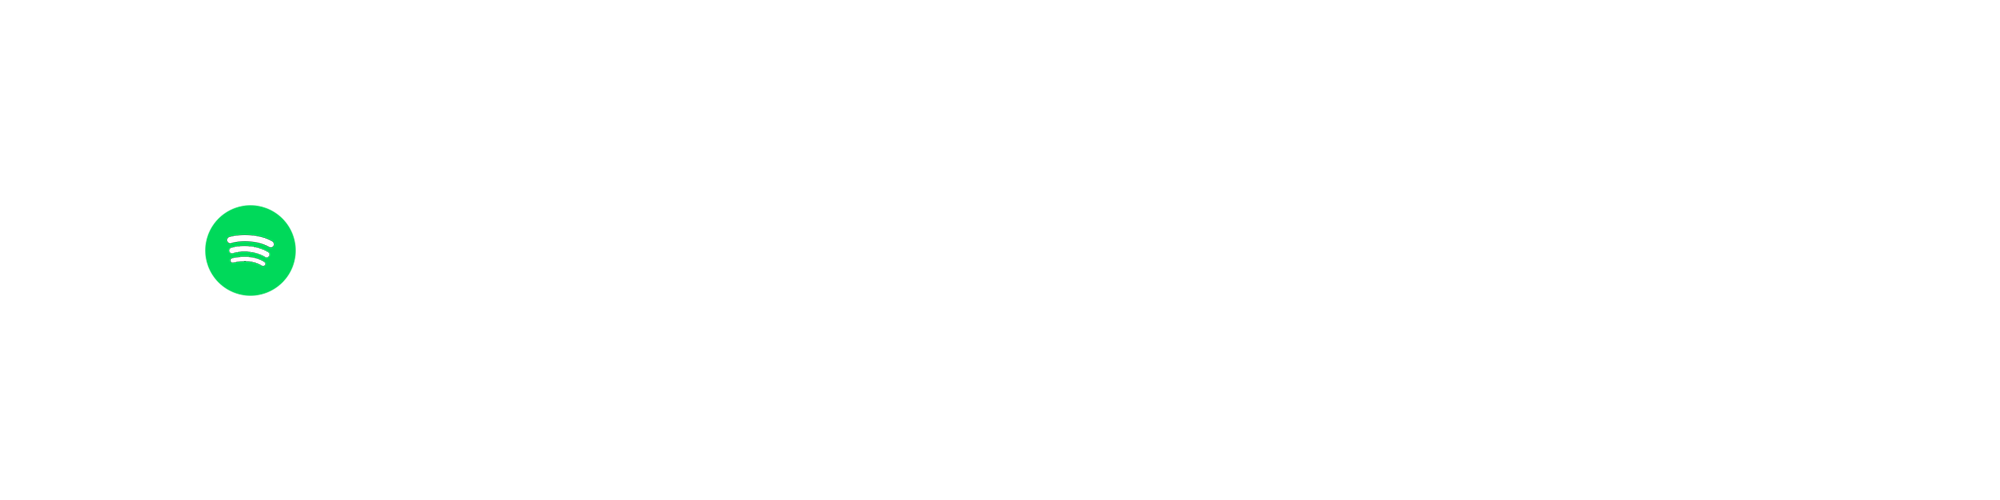 s button.png